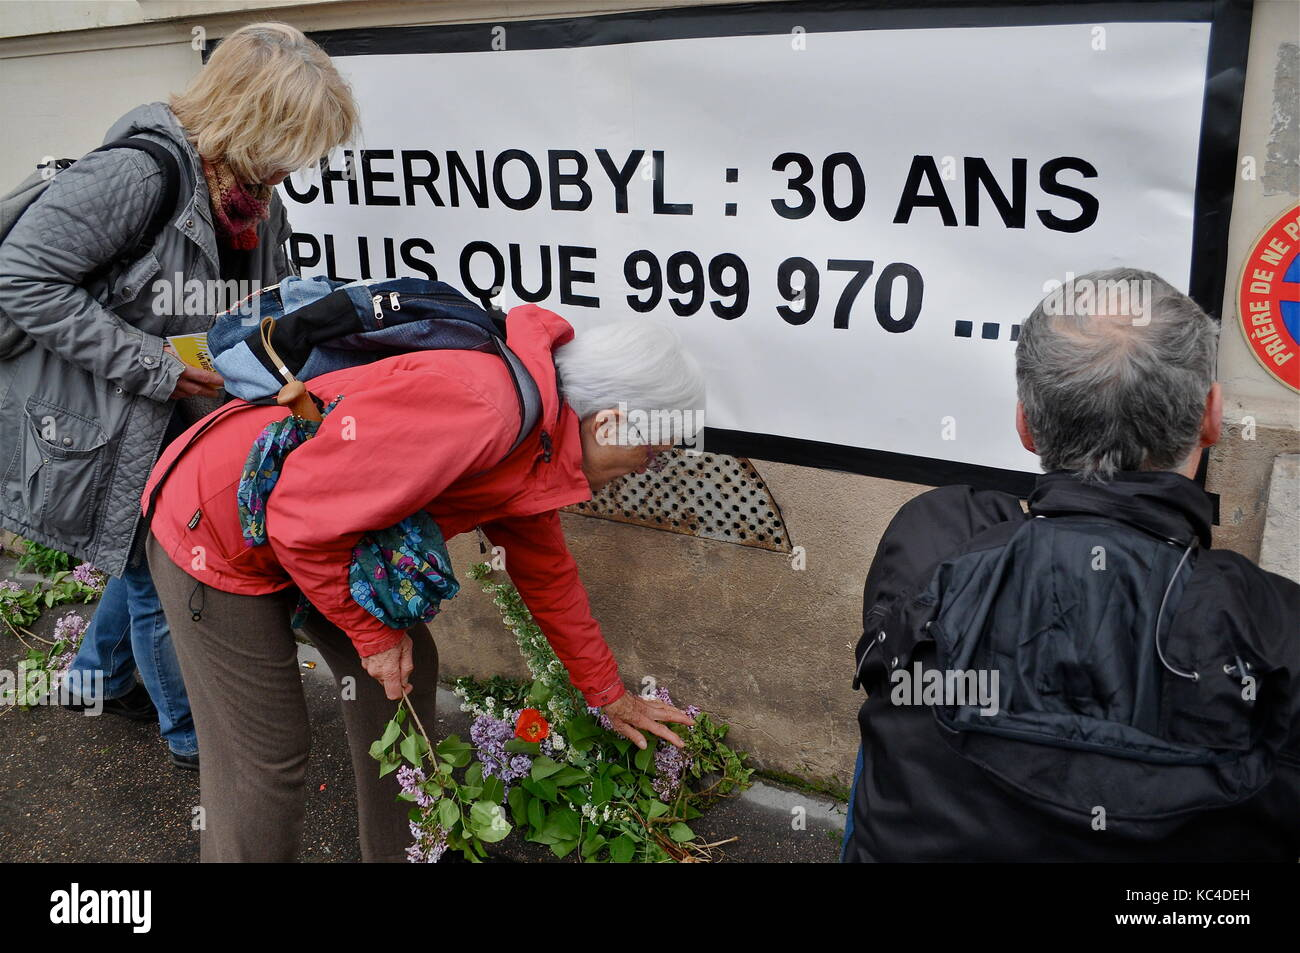 Greenpeace militants celebrate the 30th anniversary of Tchernobyl nuclear disaster, Lyon, France - Stock Image